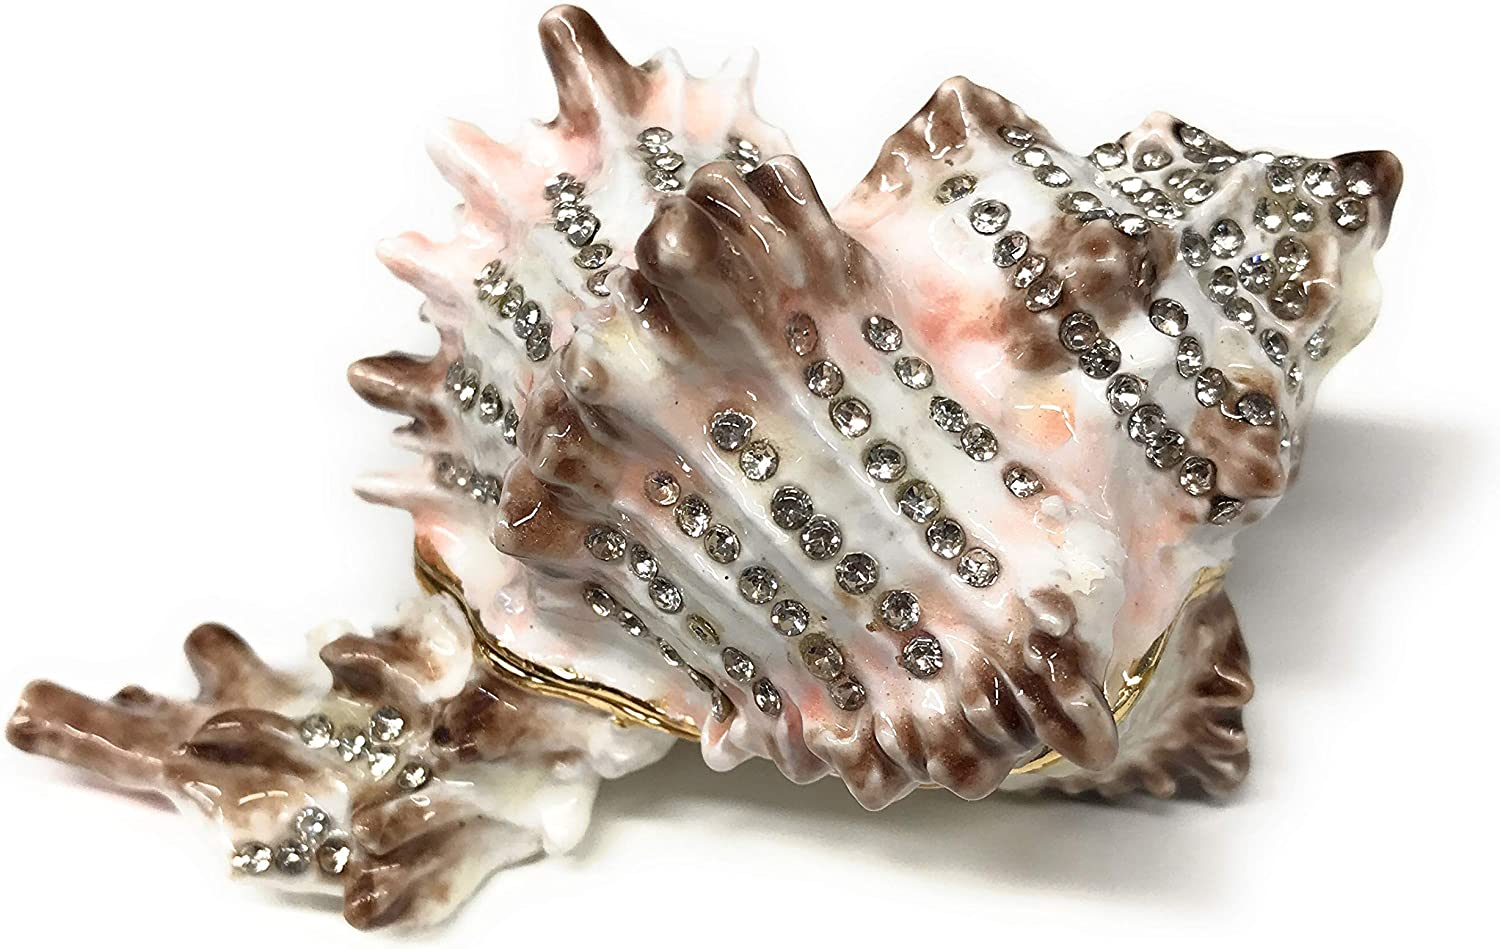 Kubla Crafts Enameled Conch Seashell Trinket Box, Accented with Austrian Crystals, 3.5 Inches Long